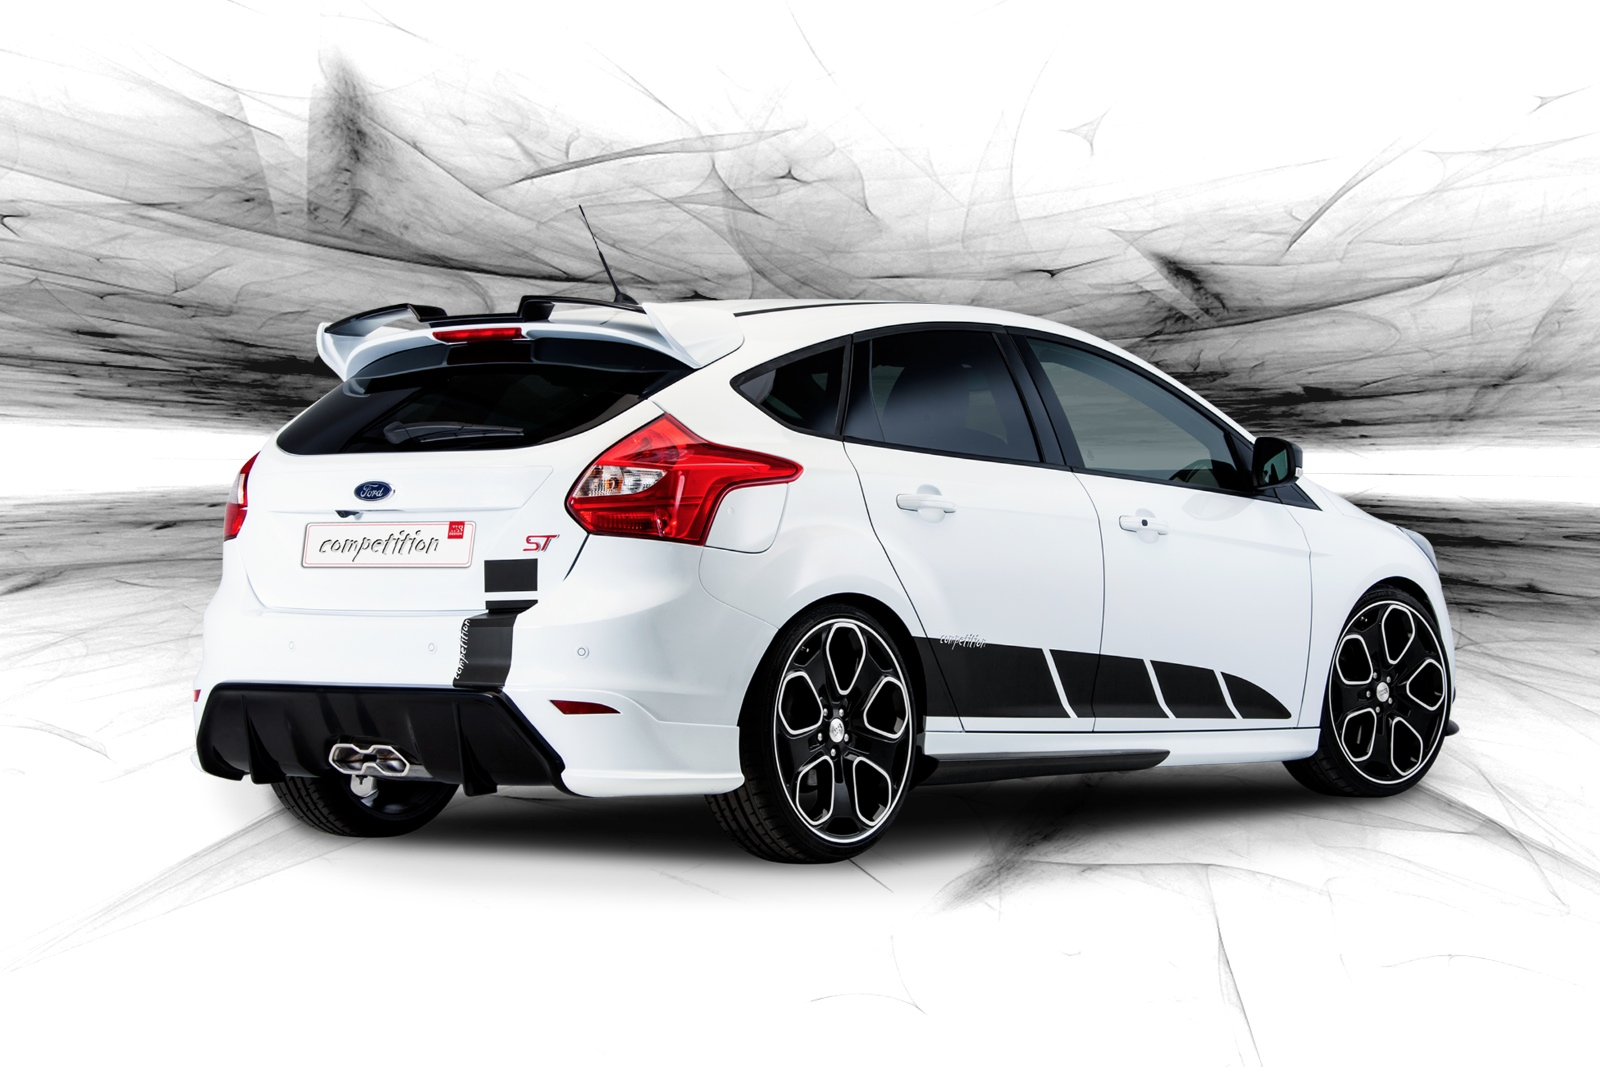 2013 Ford Focus ST Competition by MS Design Looks Hot ...